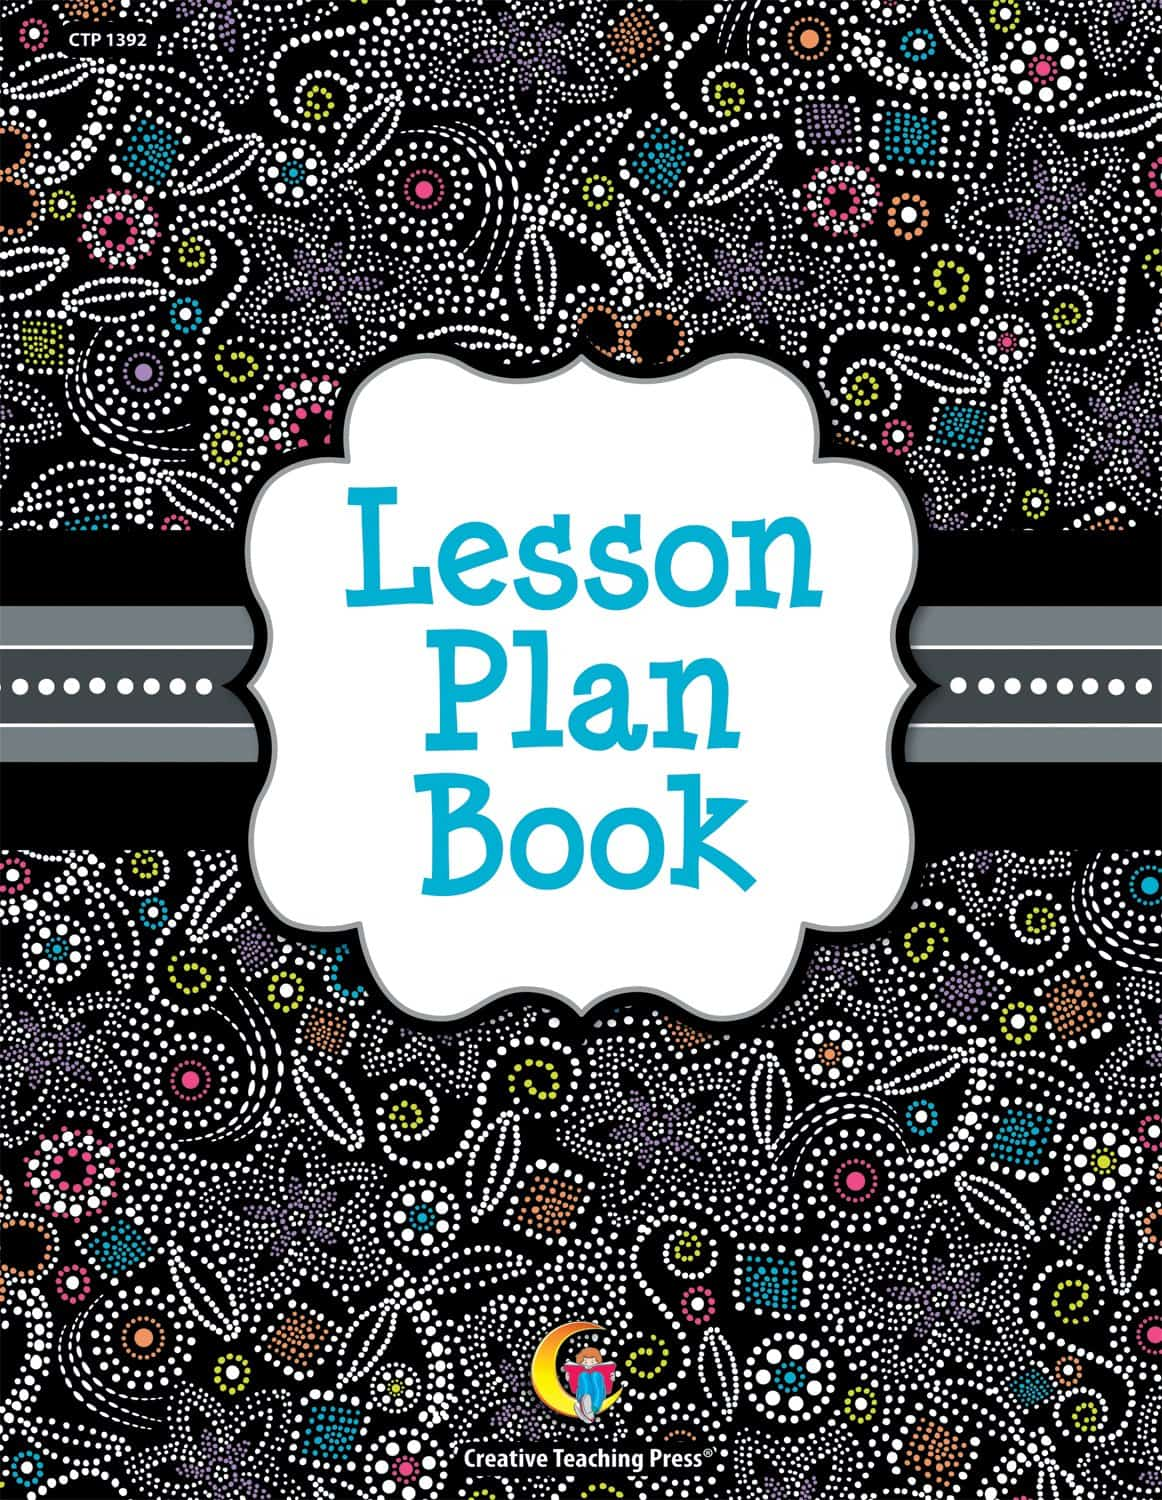 Book Cover Design Lesson Plan : Lesson plan book  boys and a dog